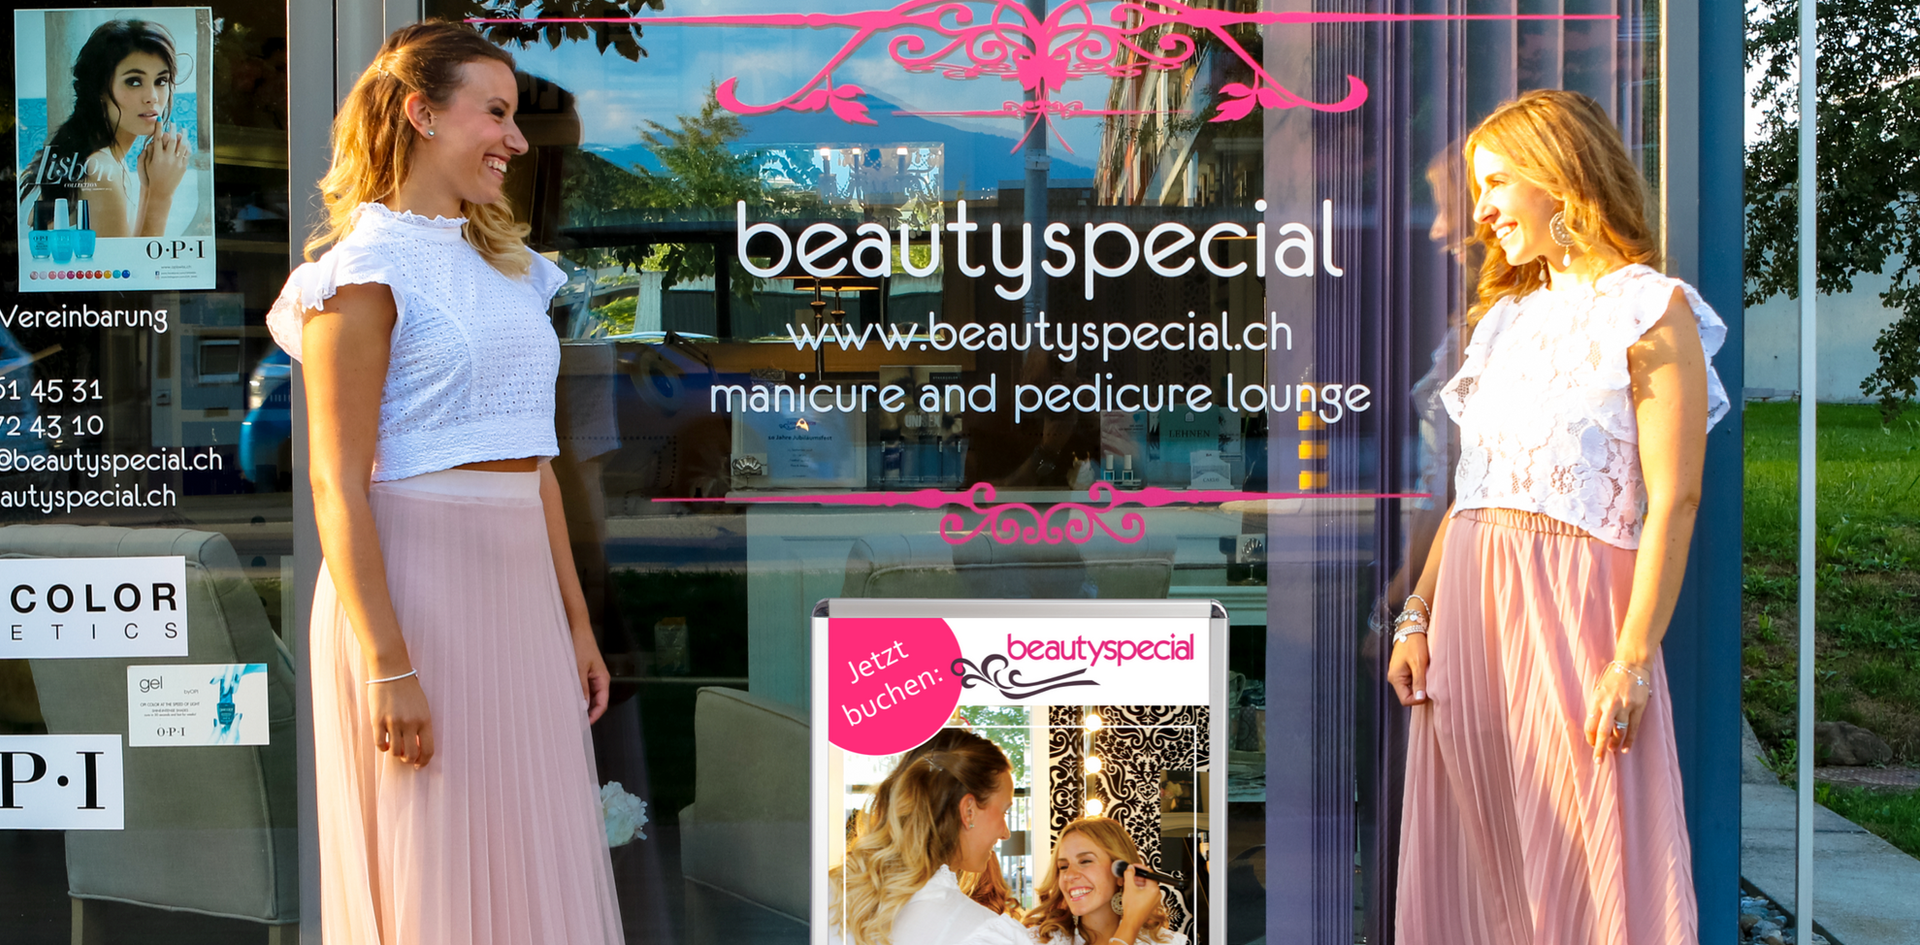 Beautyspecial